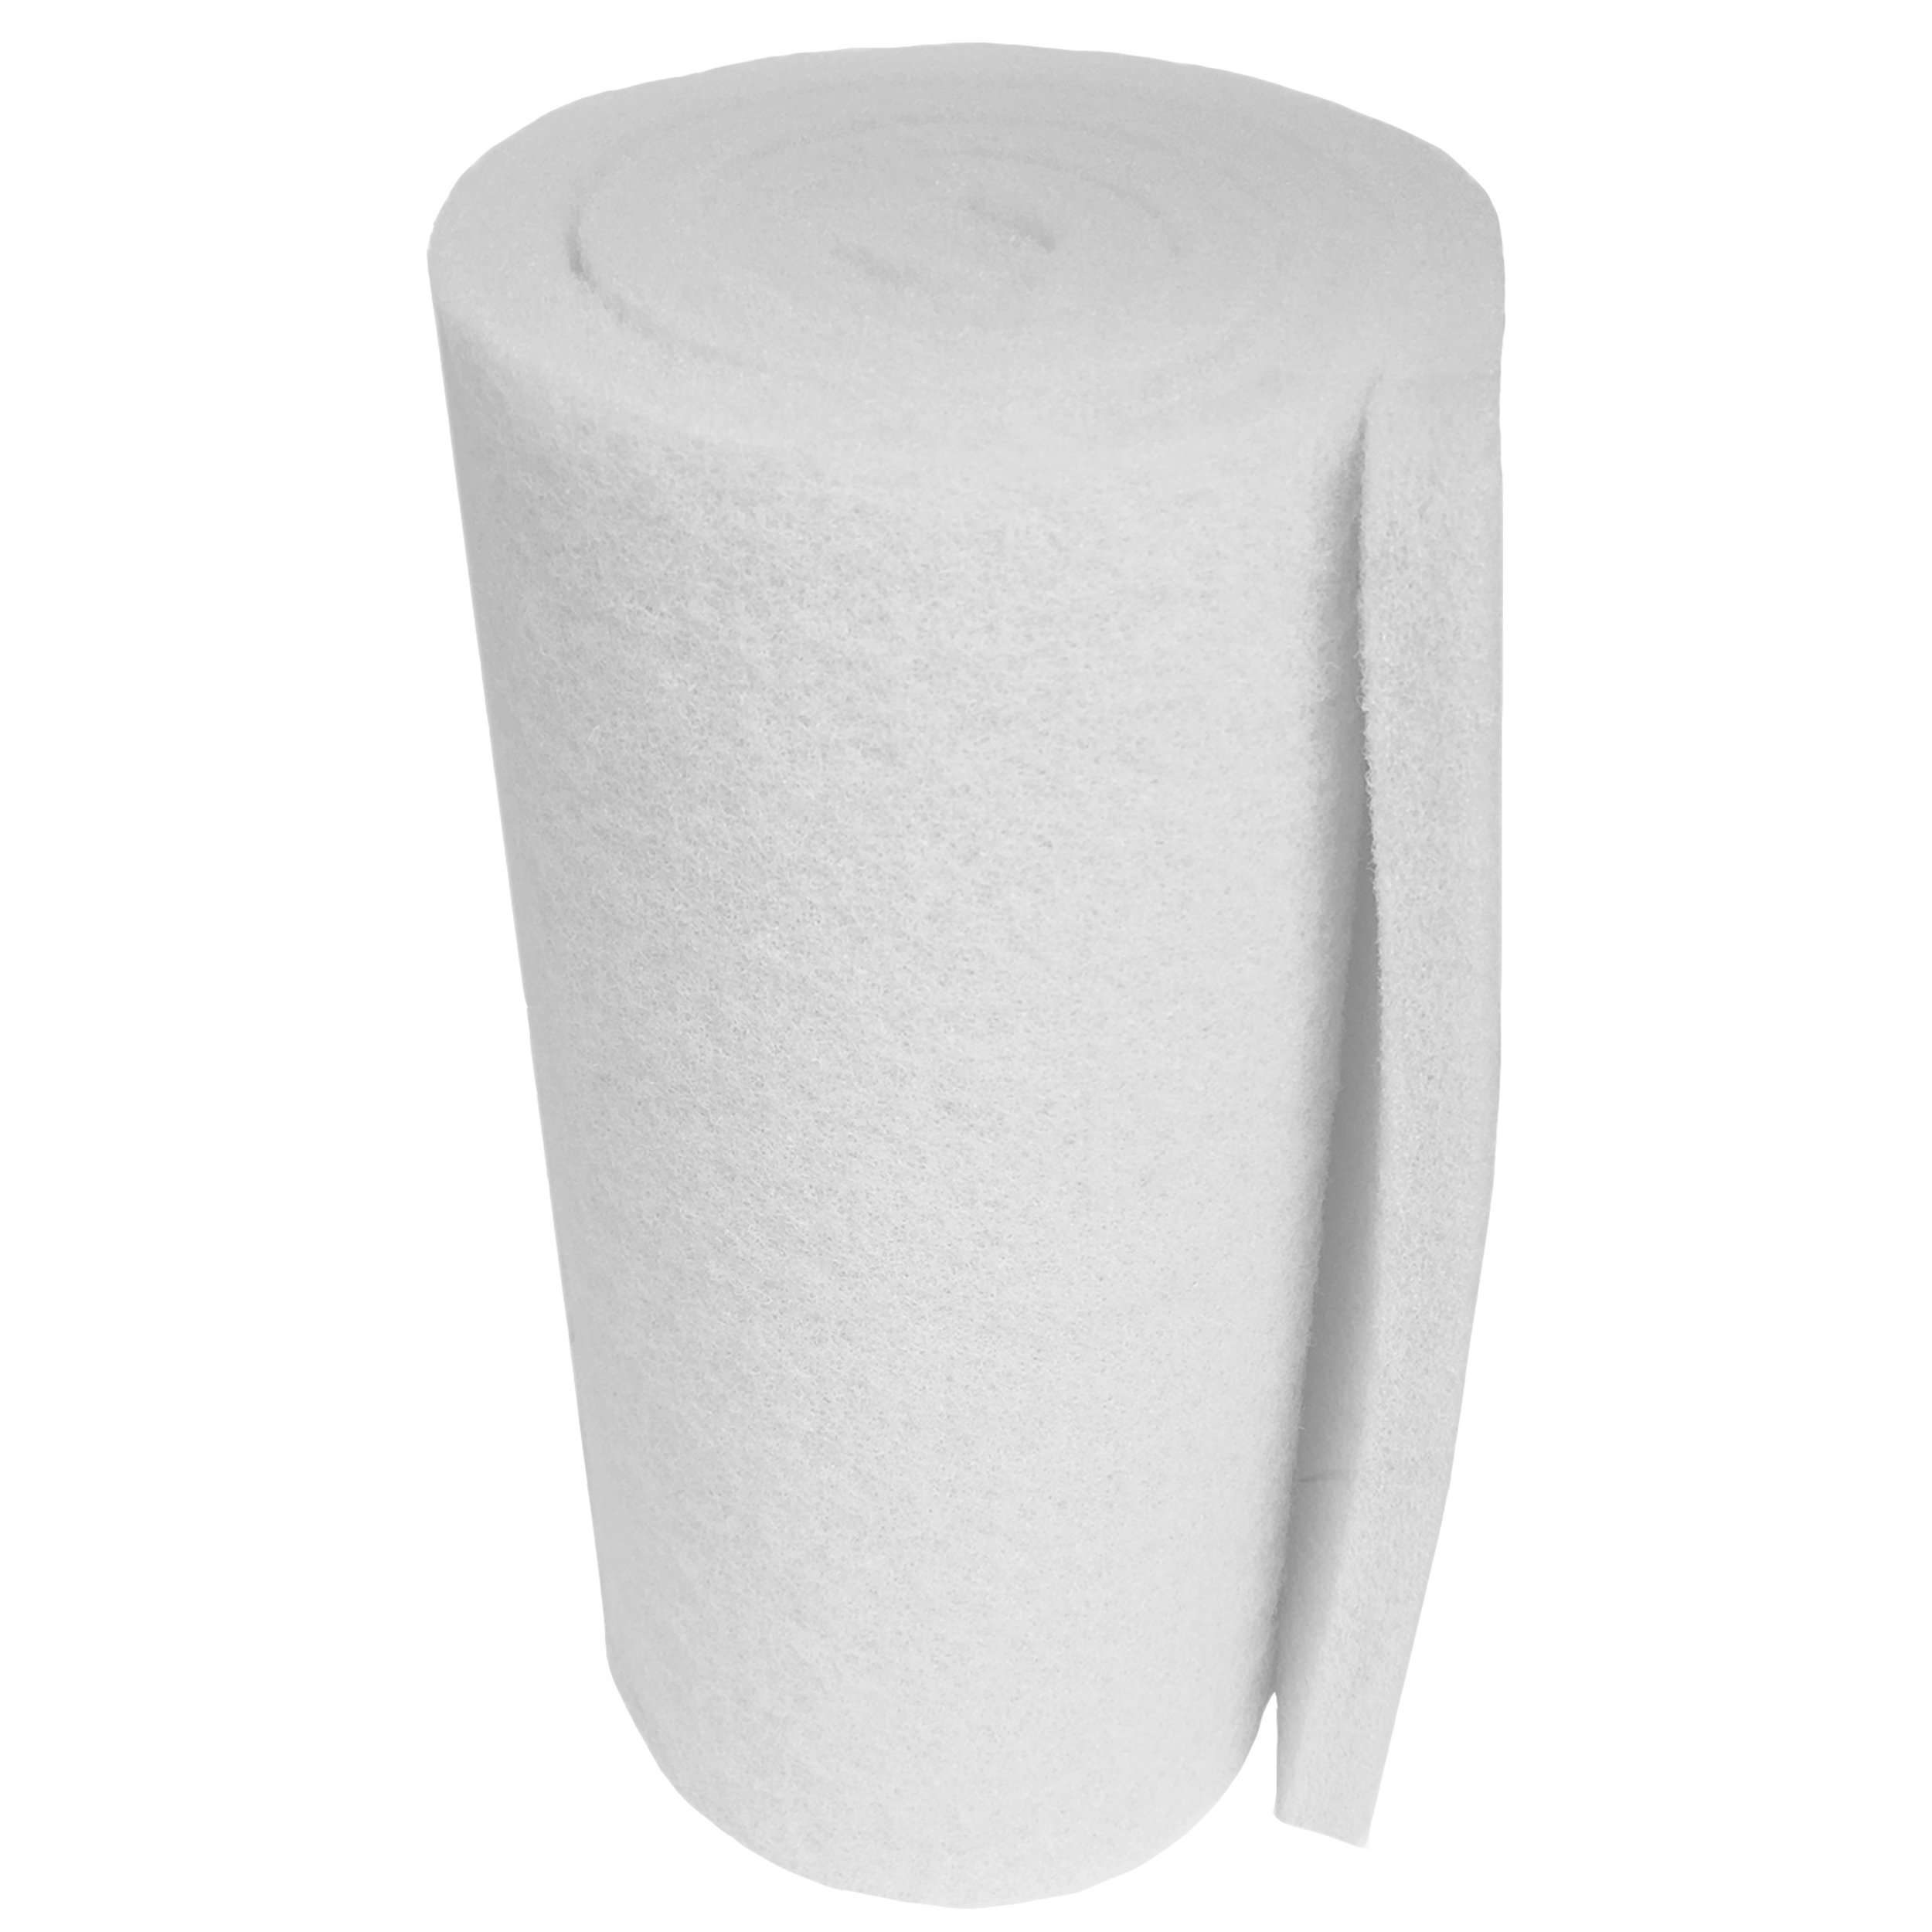 Aquatic Experts Classic Koi Pond Filter Pad FINE - 18 Inches by 72 Inches by 3/4'' to 1 Inch - White Bulk Roll Pond Filter Media, Ultra-Durable Fish Pond Filter Material USA by Aquatic Experts